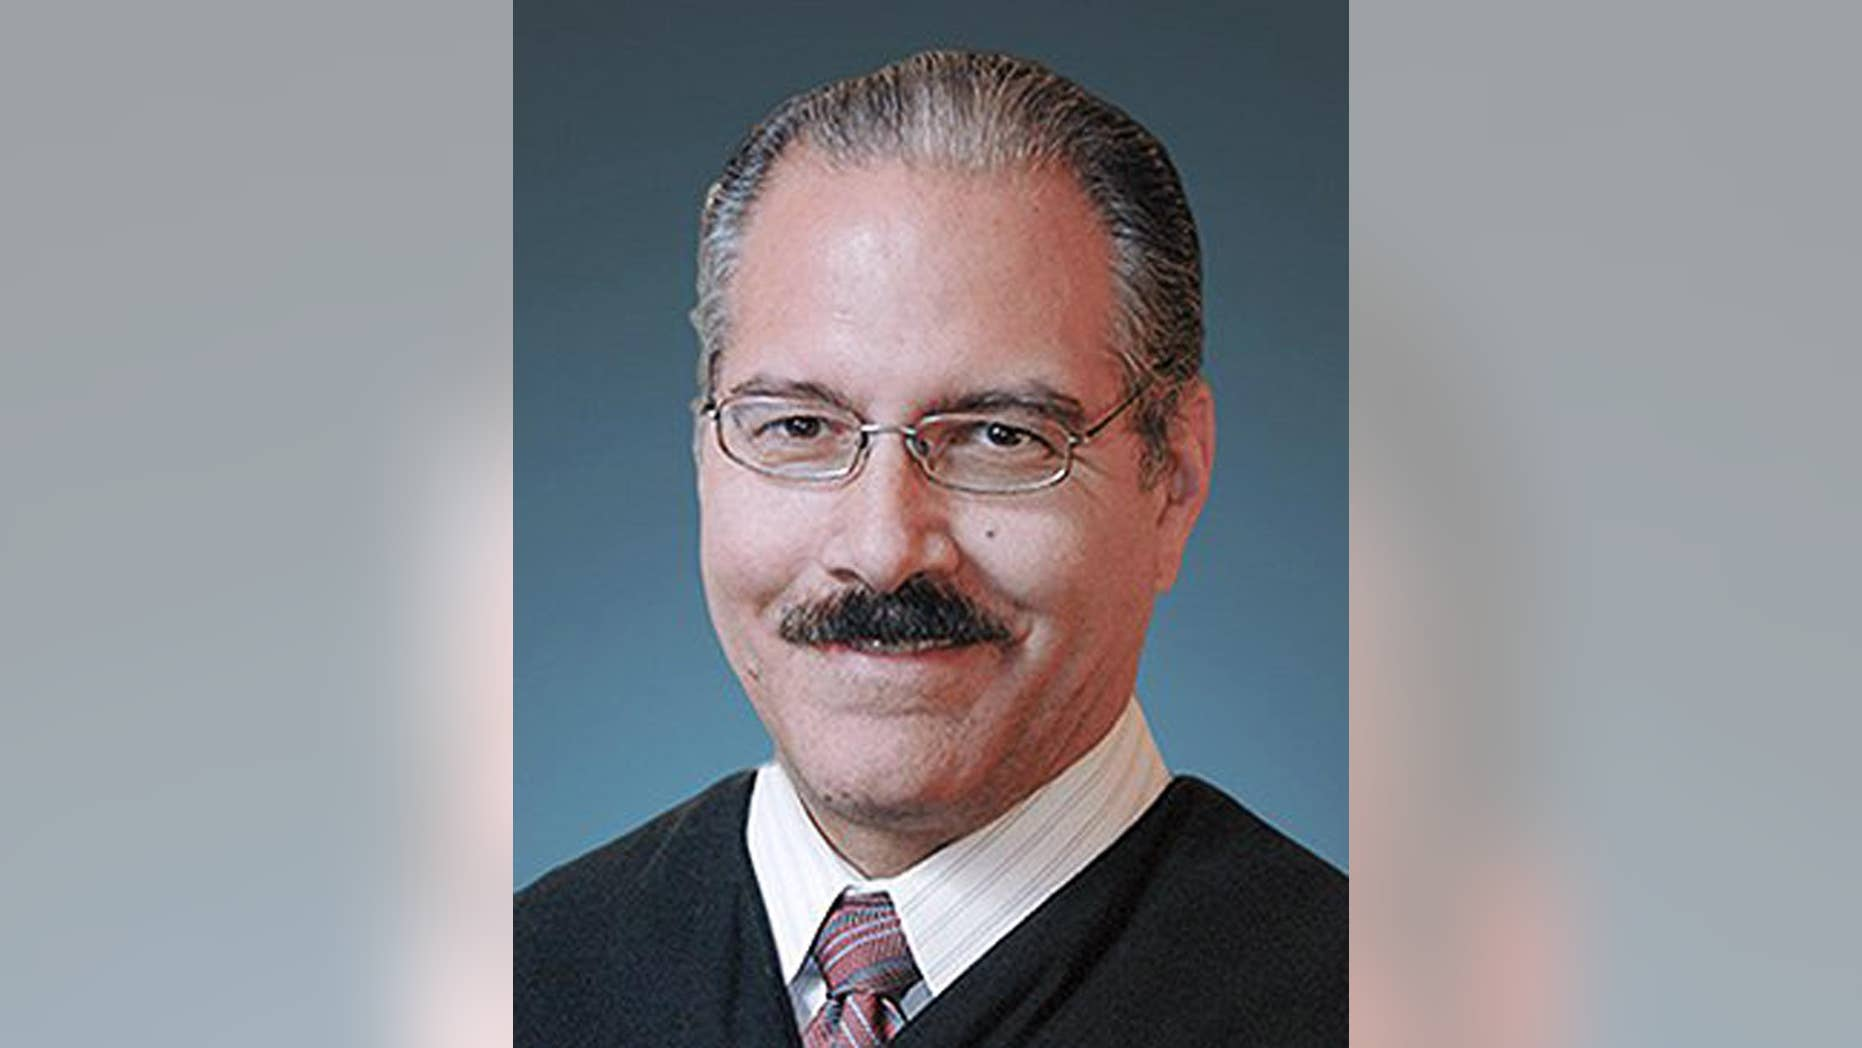 This photo provided by the Tulsa County District Court shows District Judge James Caputo. Caputo, who is assigned to the case of a volunteer deputy accused of manslaughter in the shooting of a restrained suspect, said in a court filing Wednesday, April 22, 2015 that he is considering whether to recuse himself due to his close ties to the Tulsa, Oklahoma, sheriff's office. (Tulsa County District Court via AP)